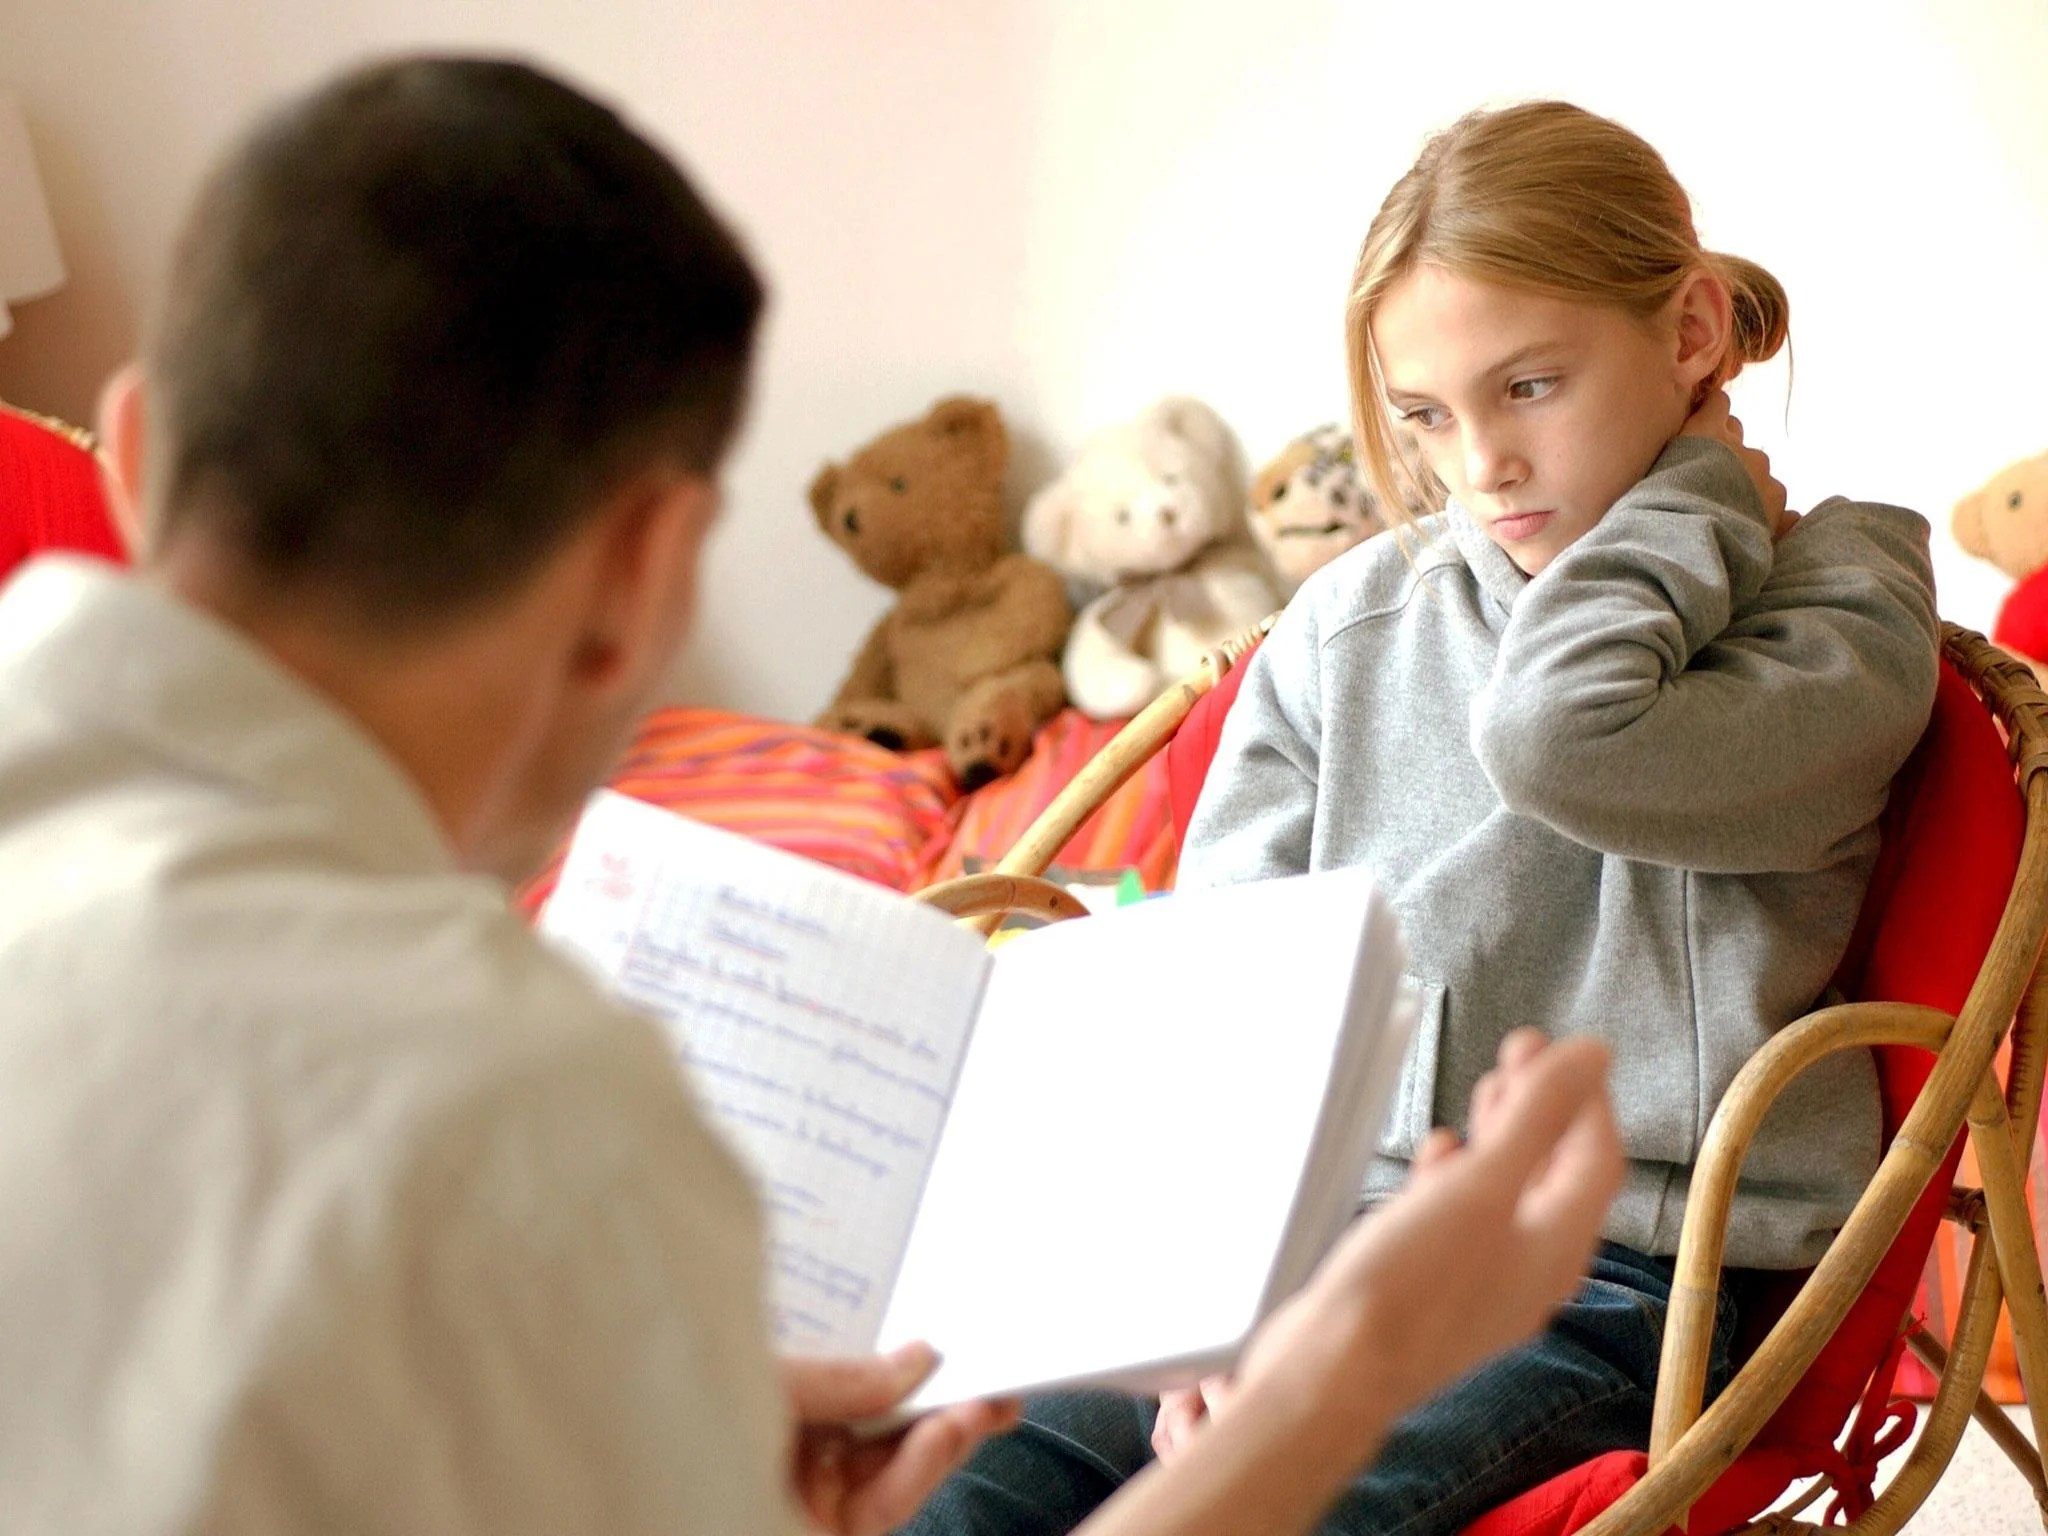 Overly Controlling Parents Cause Their Children Lifelong